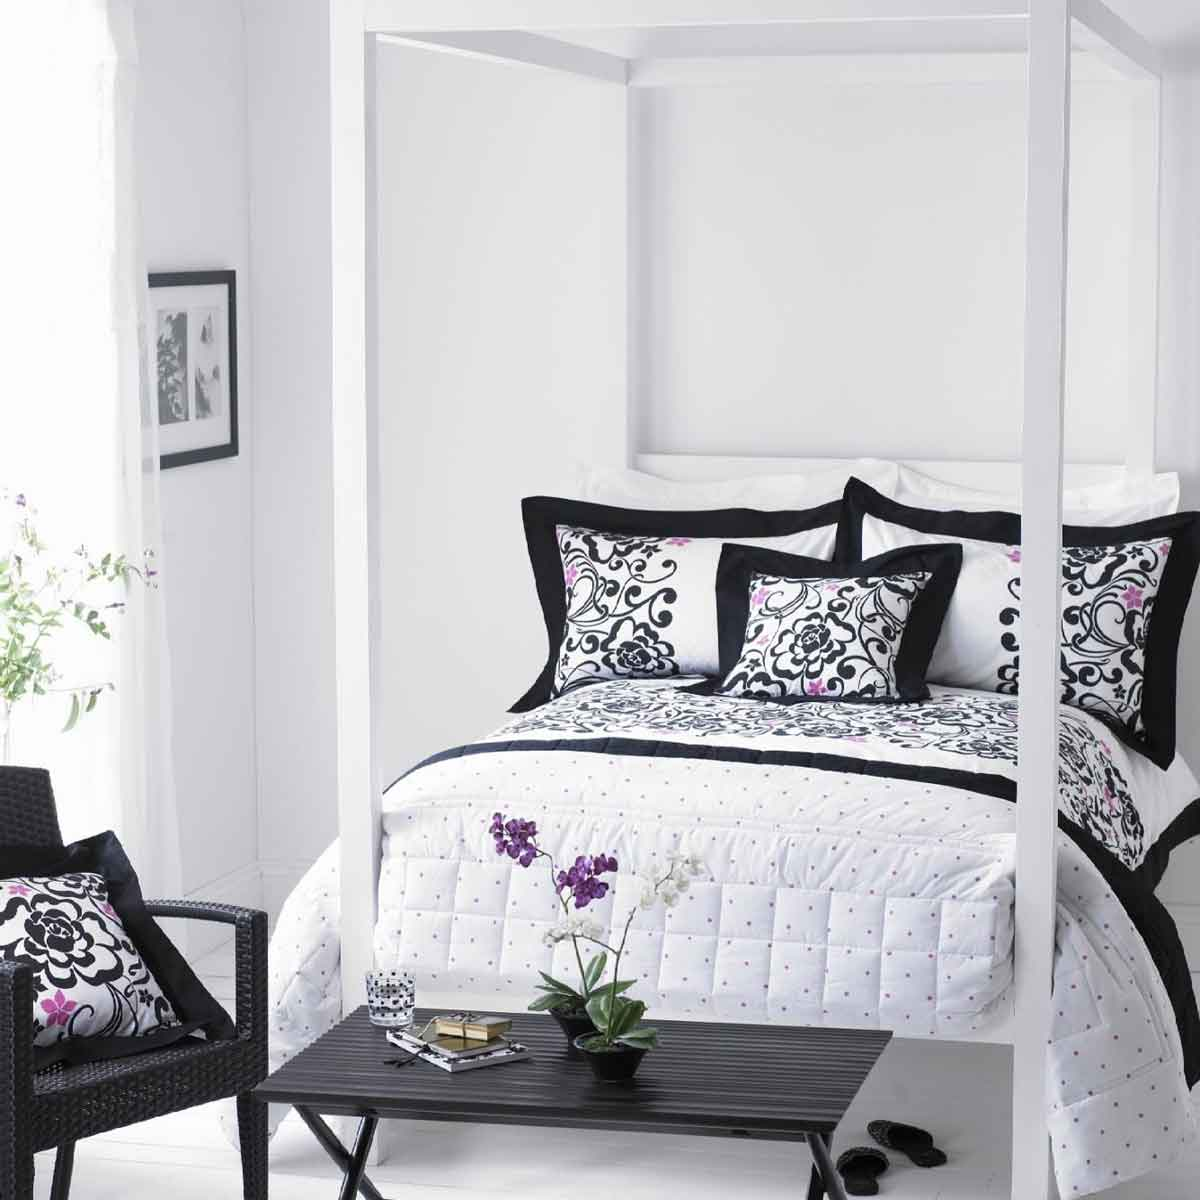 Black white grey bedroom 2017 grasscloth wallpaper for Bedroom ideas grey bed